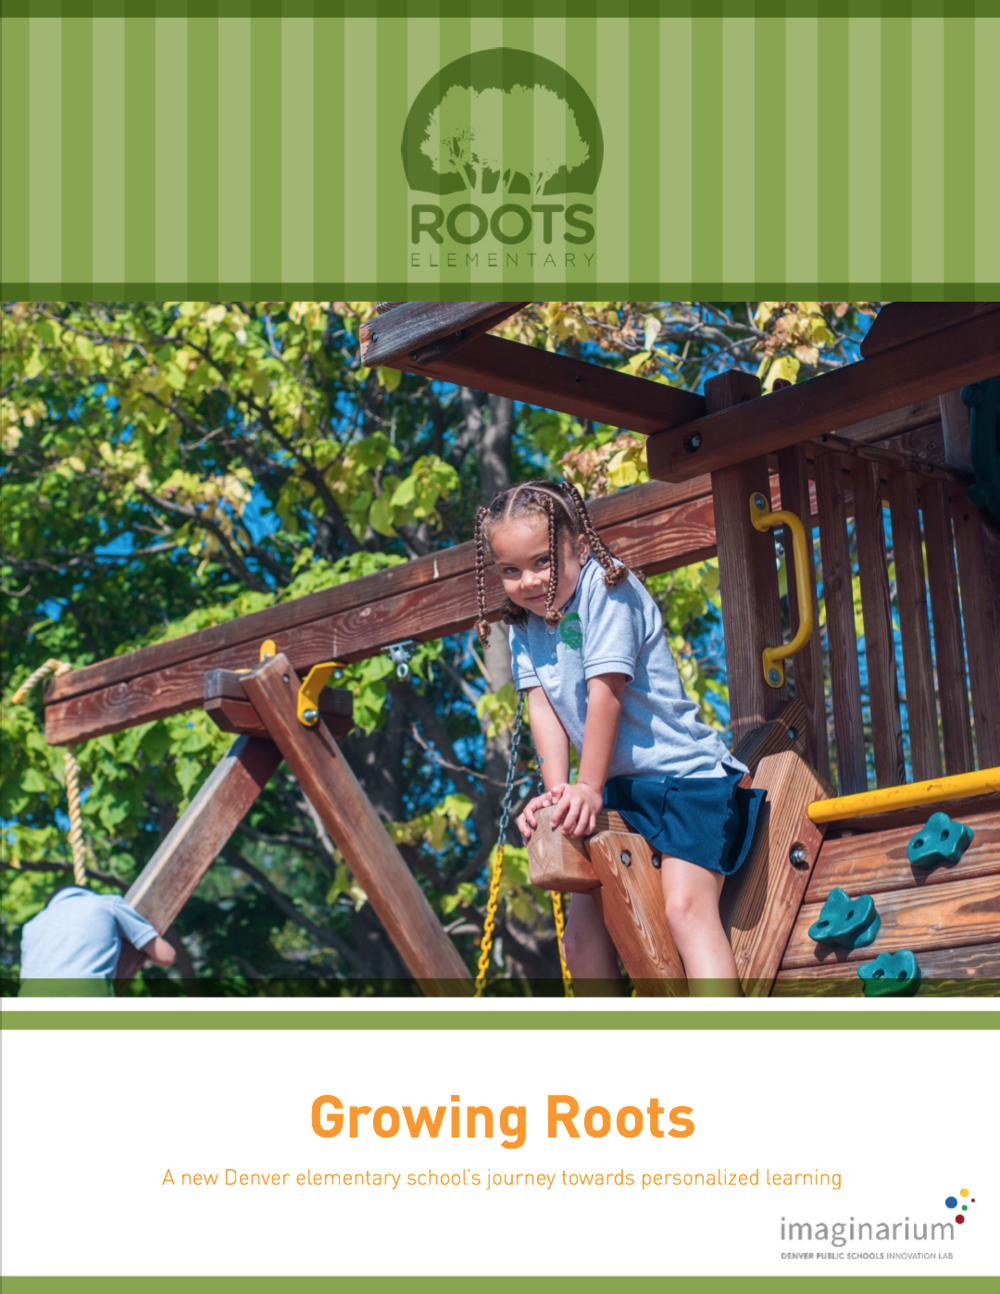 growing roots: a new denver elementary school, january 2016